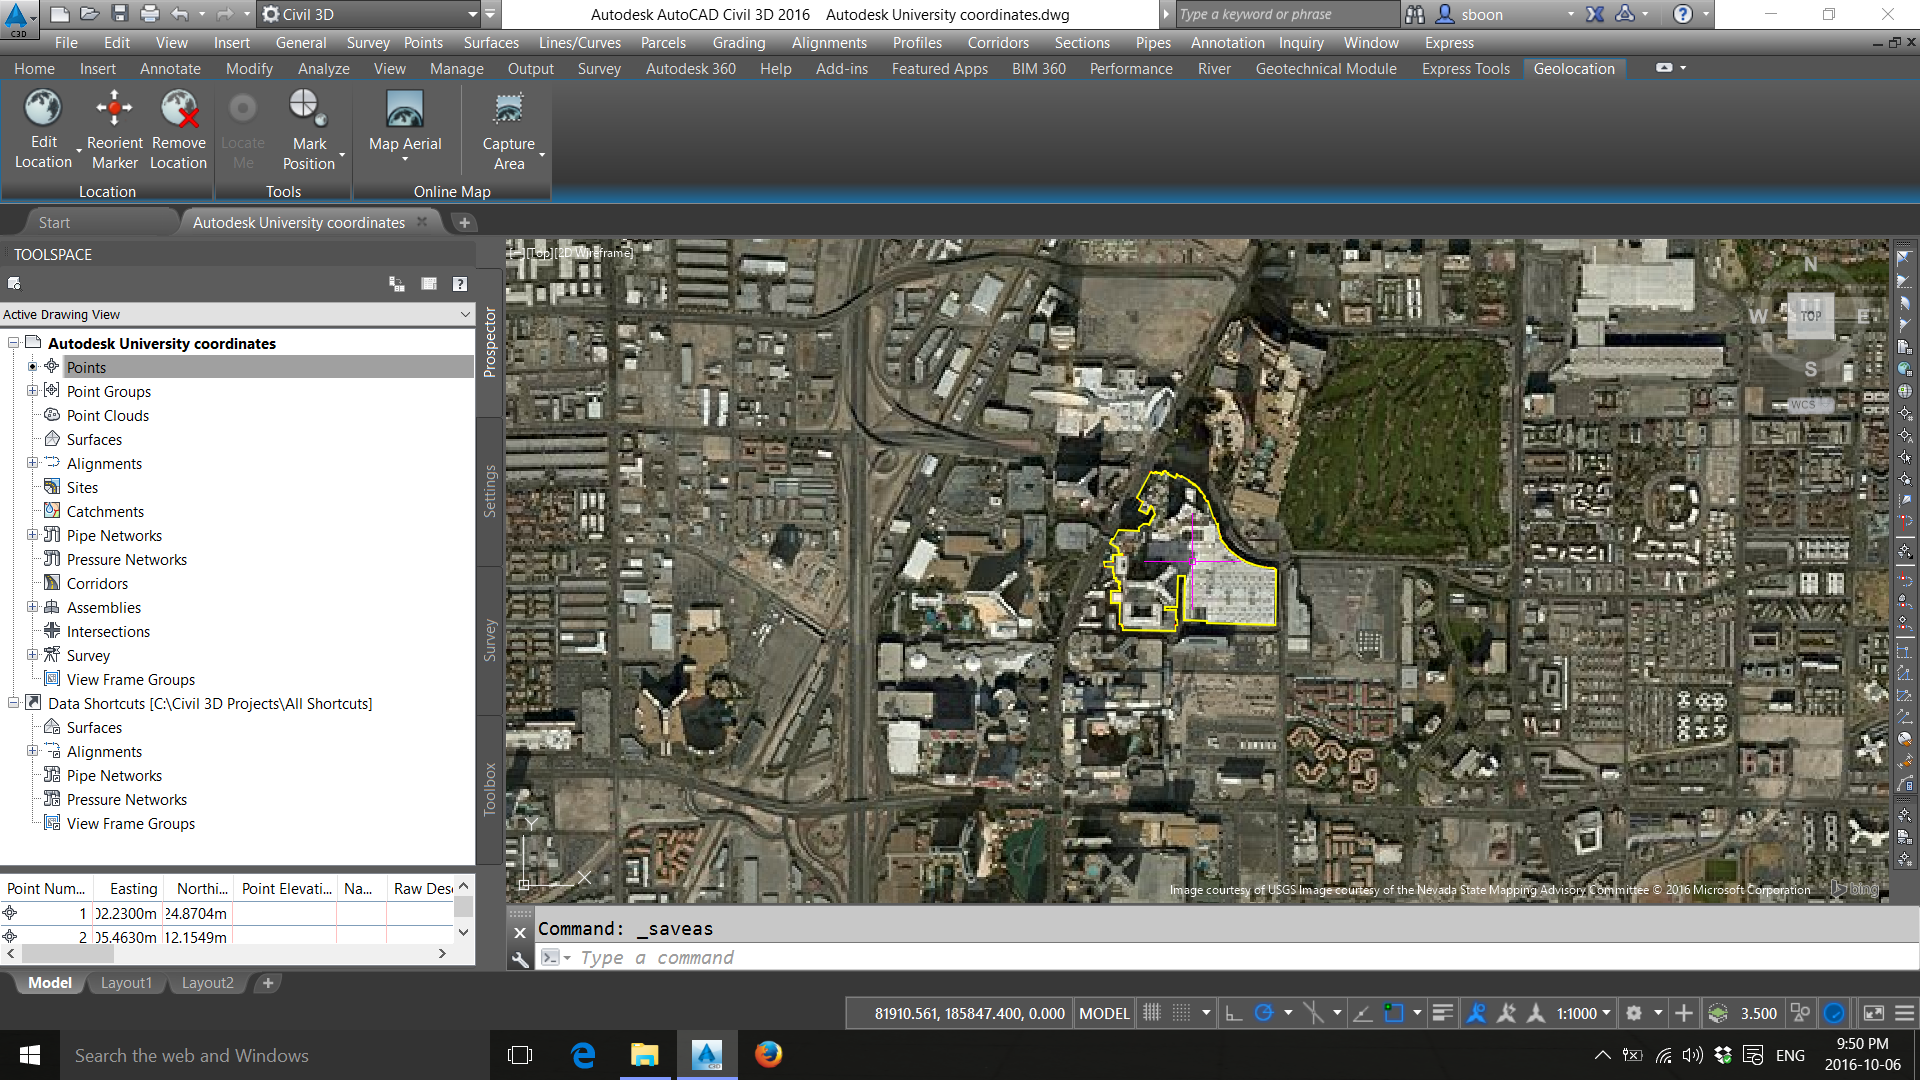 Setting up coordinate systems for bing maps and other gis data setting up coordinate systems for bing maps and other gis data autodesk community civil 3d gumiabroncs Image collections